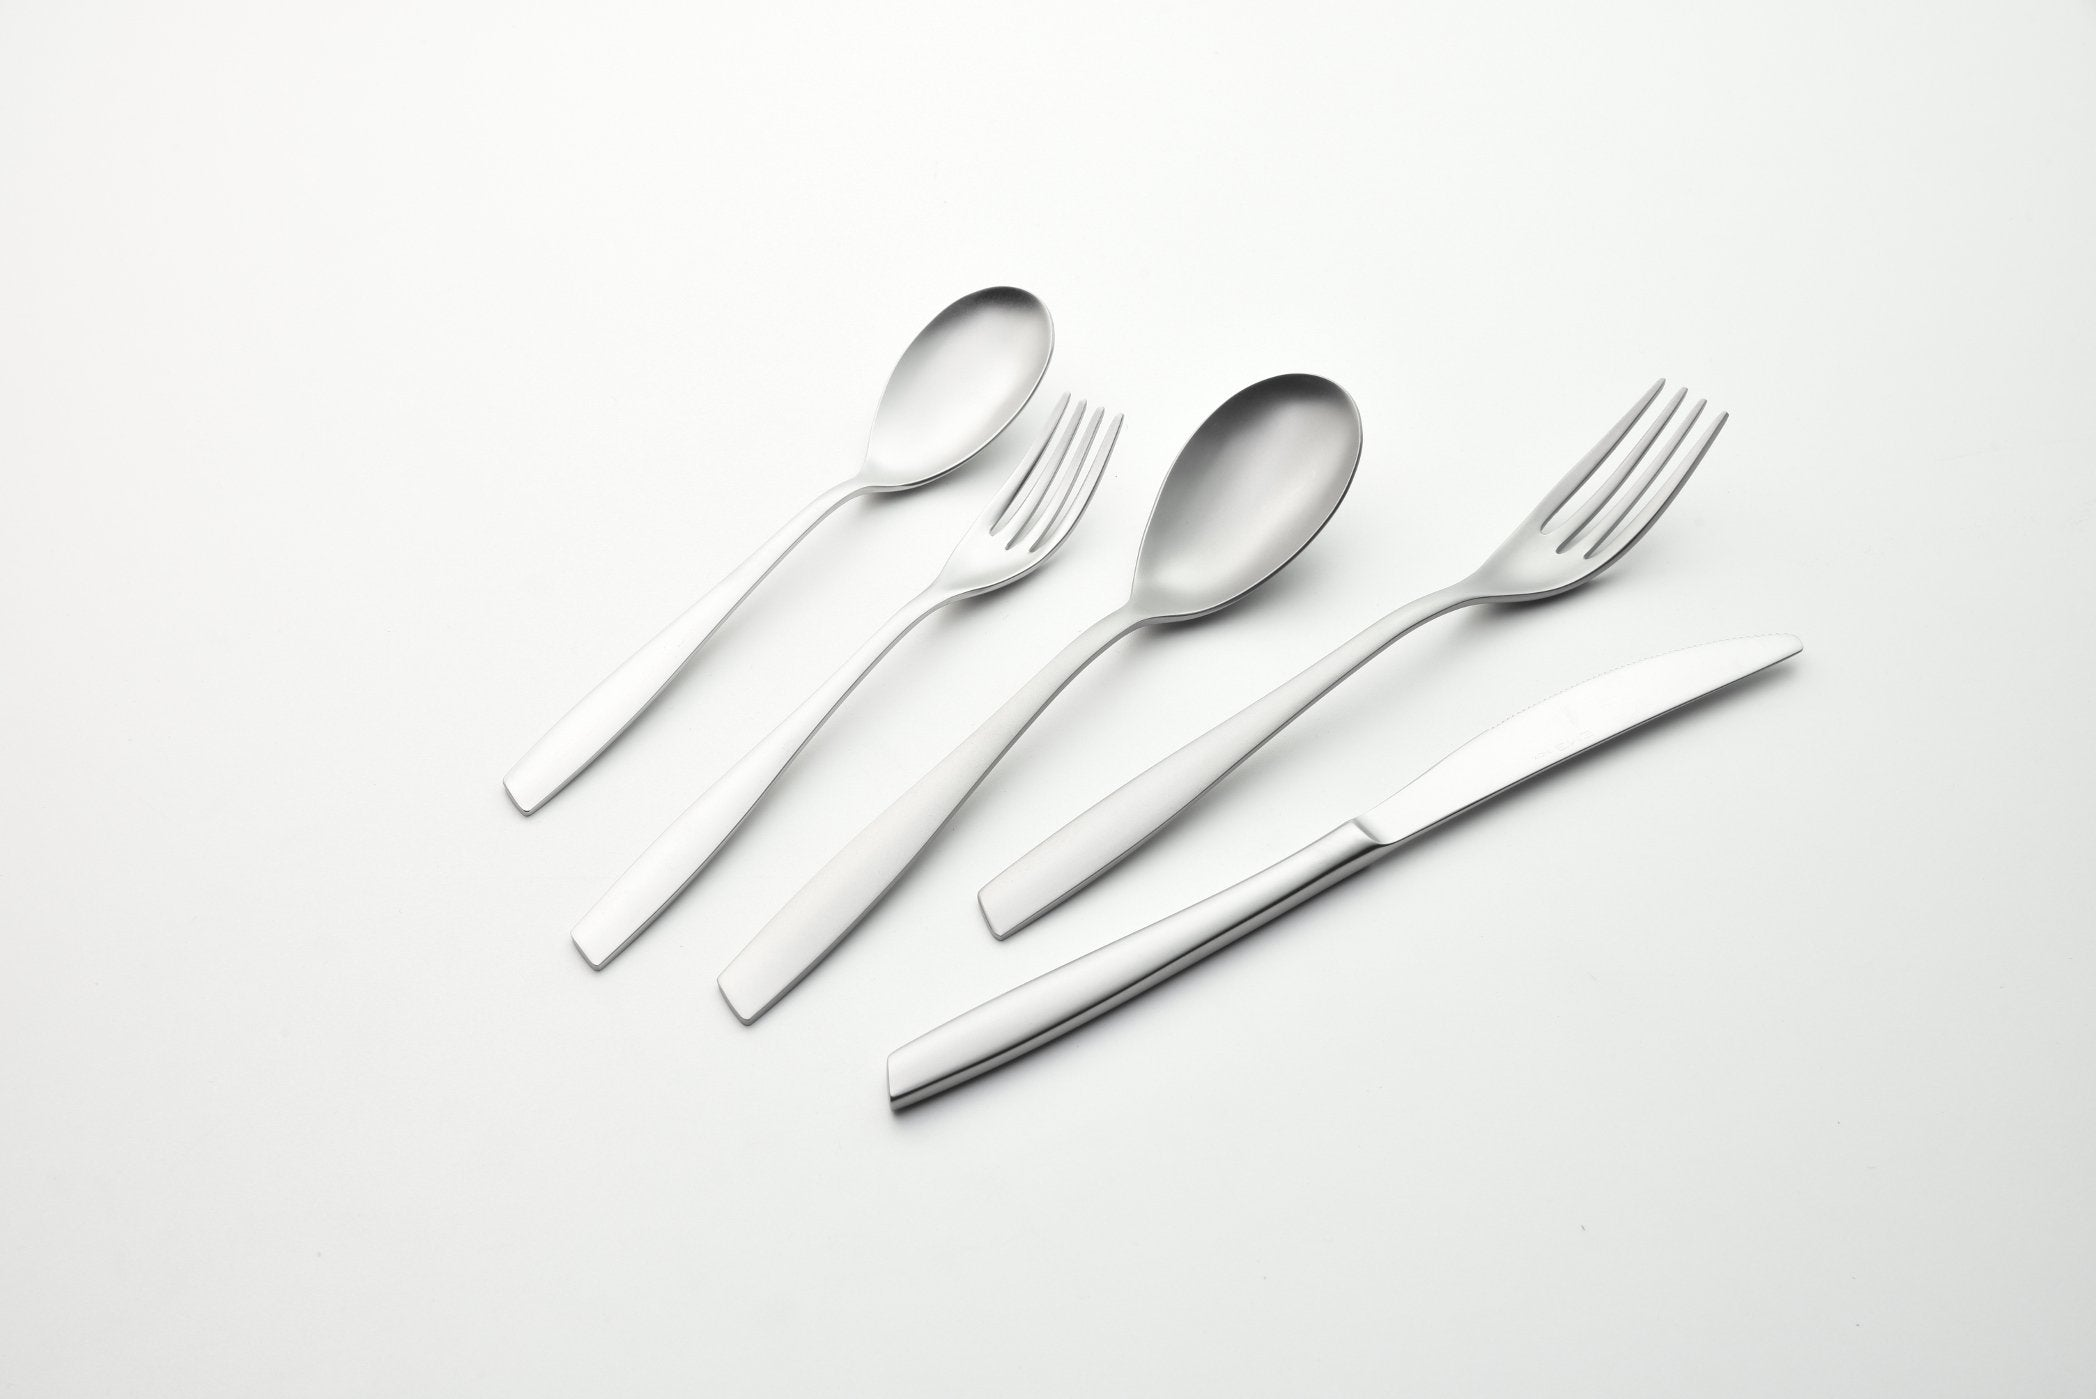 Cutlery Set 5 Pcs Eleven Sand Blasted